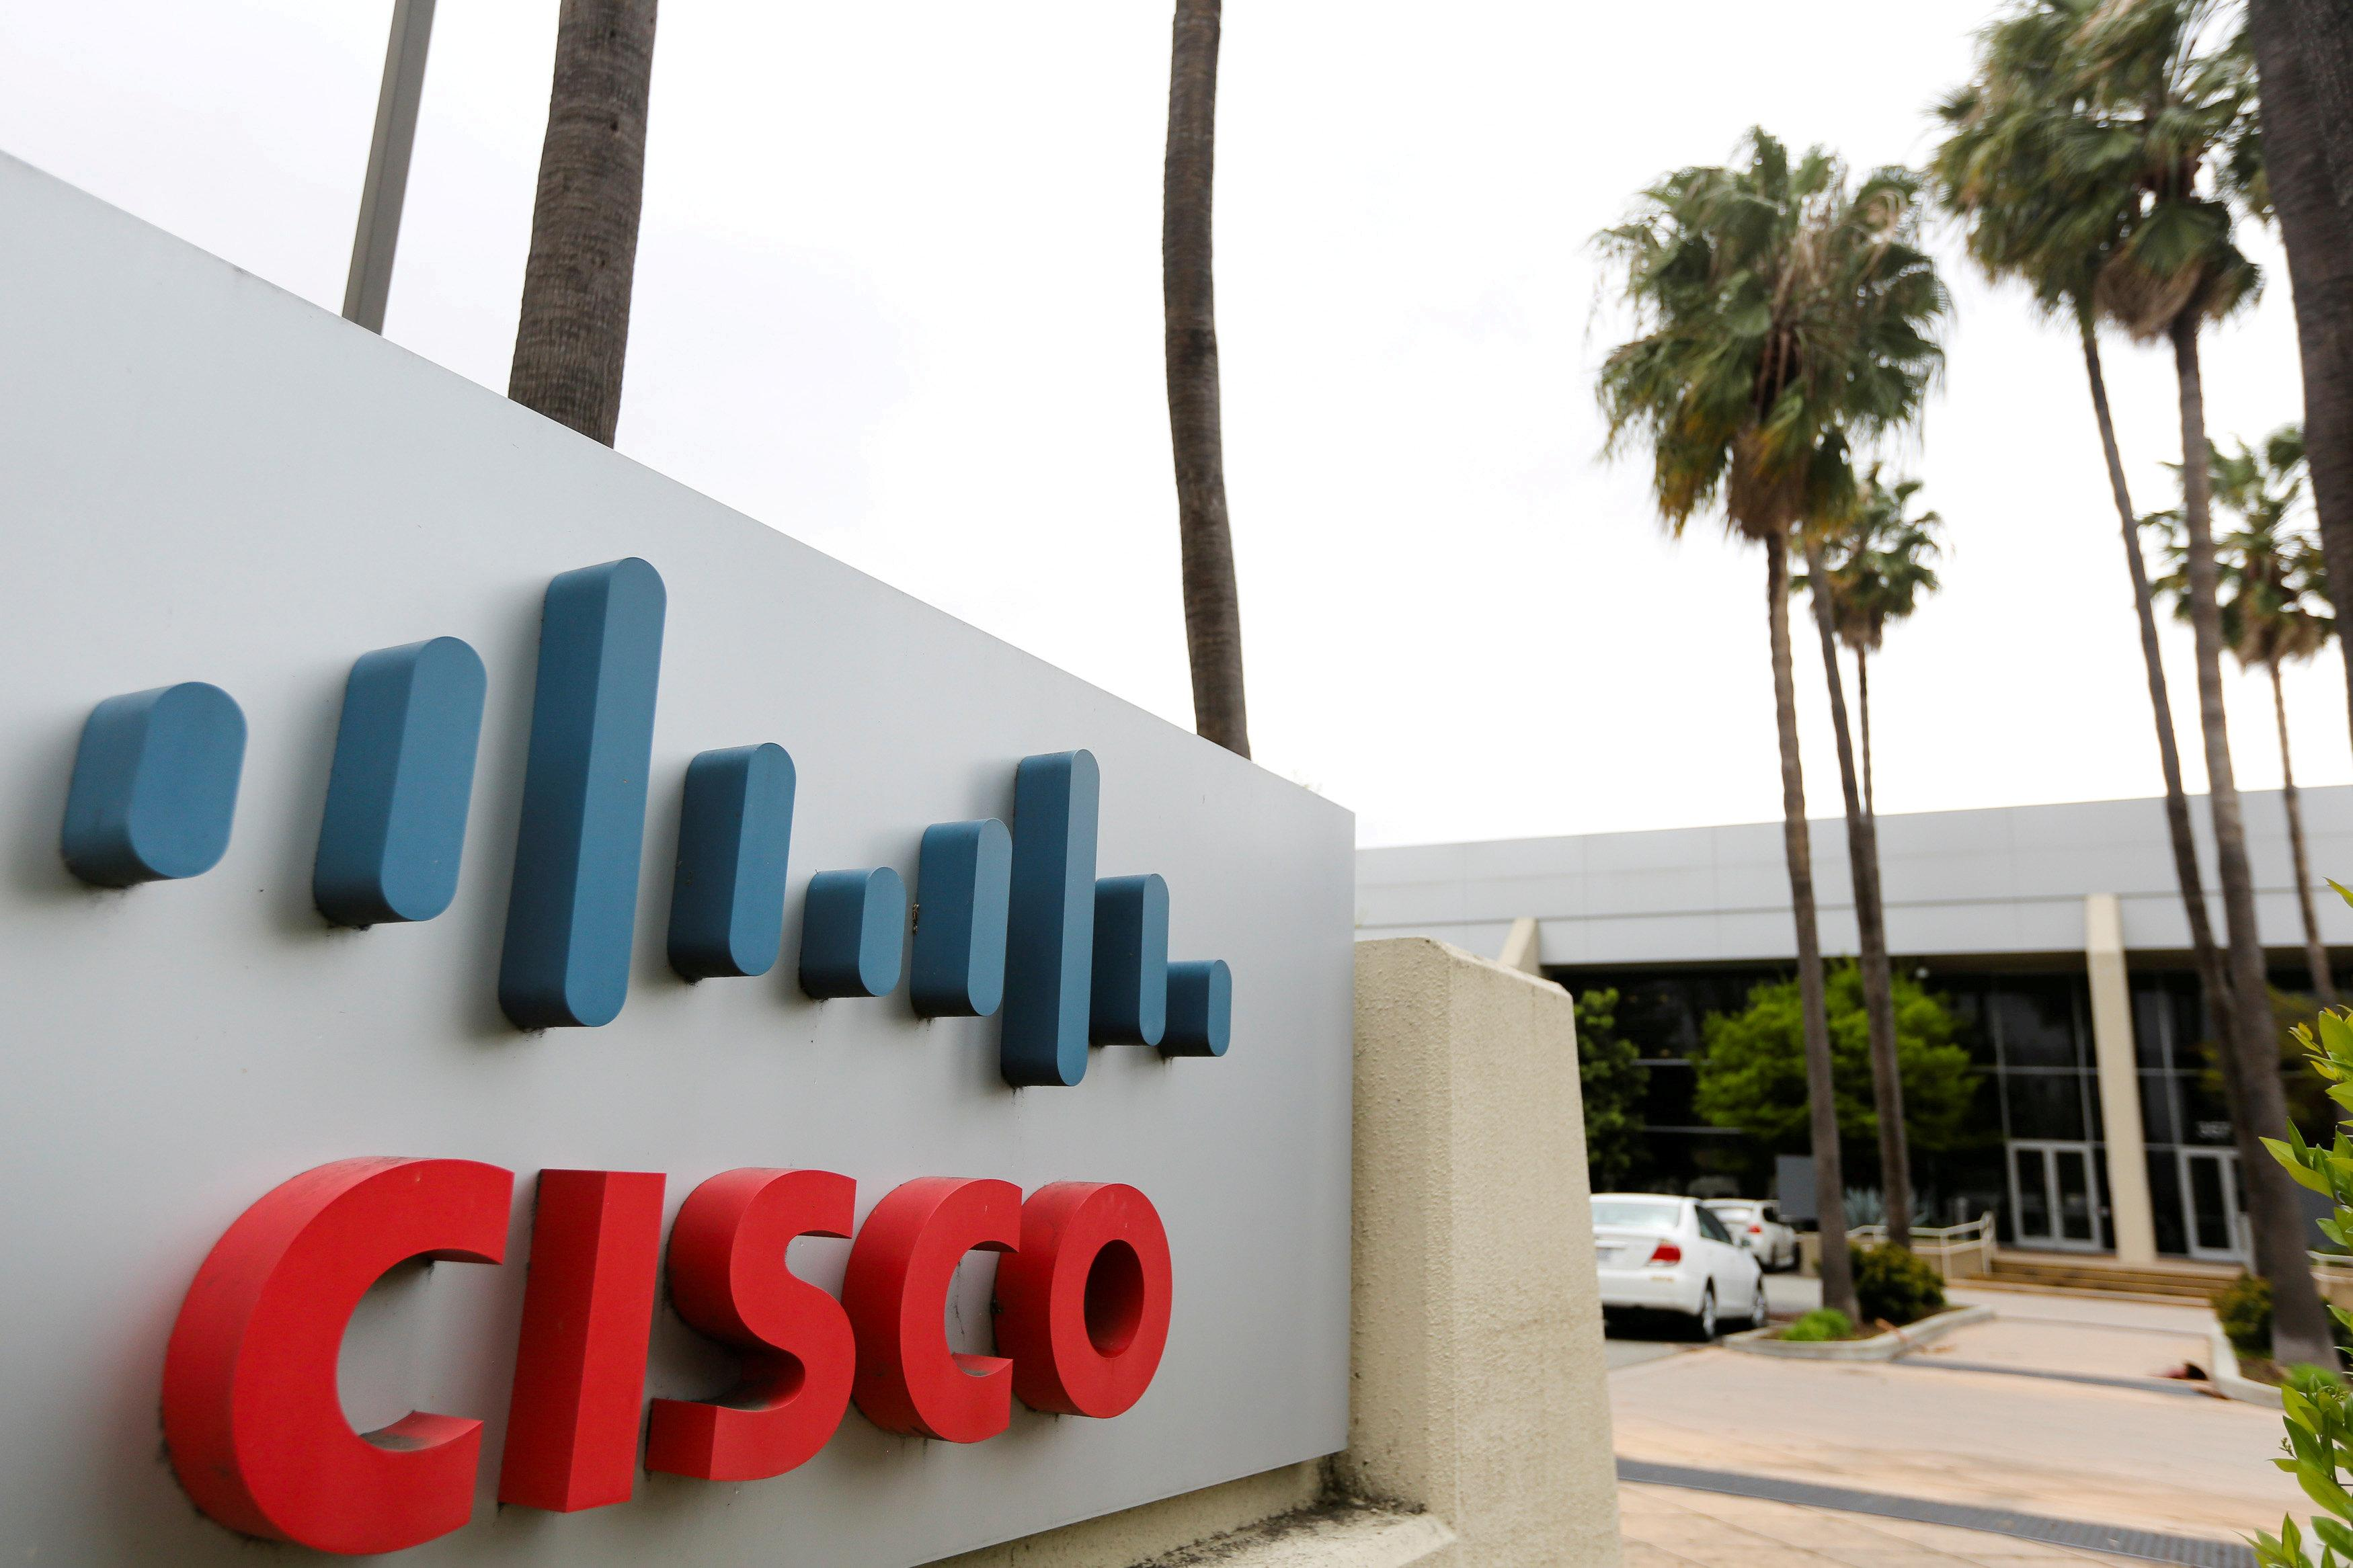 Cisco Layoffs 2019: 500 Lose Jobs In Engineering At San Jose